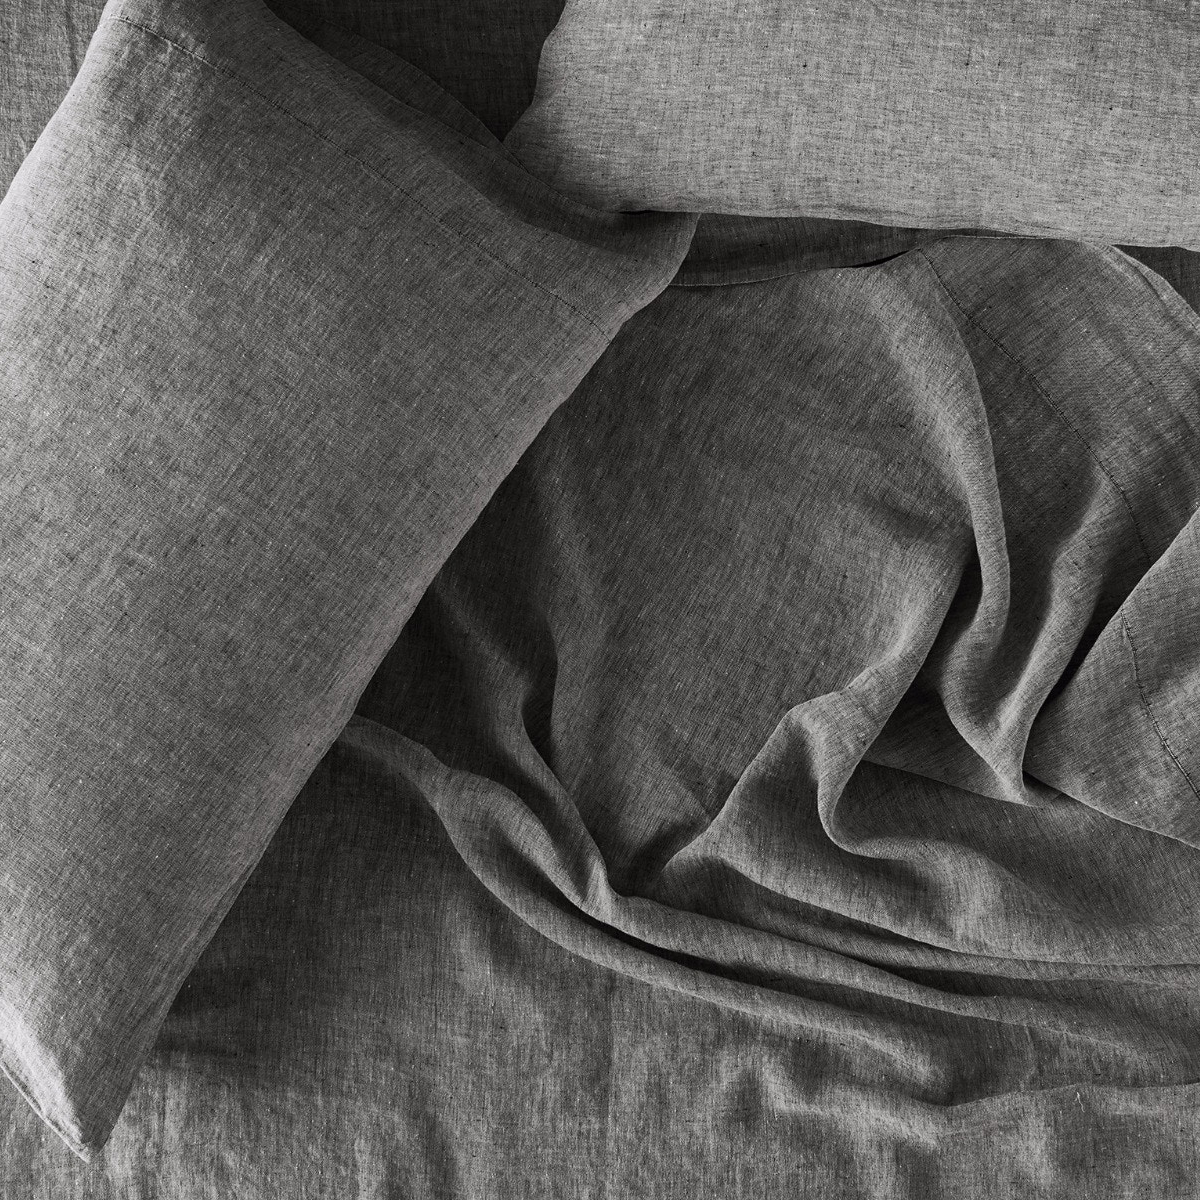 Organic Relaxed Linen Sheet Set in Charcoal Chambray by Coyuchi